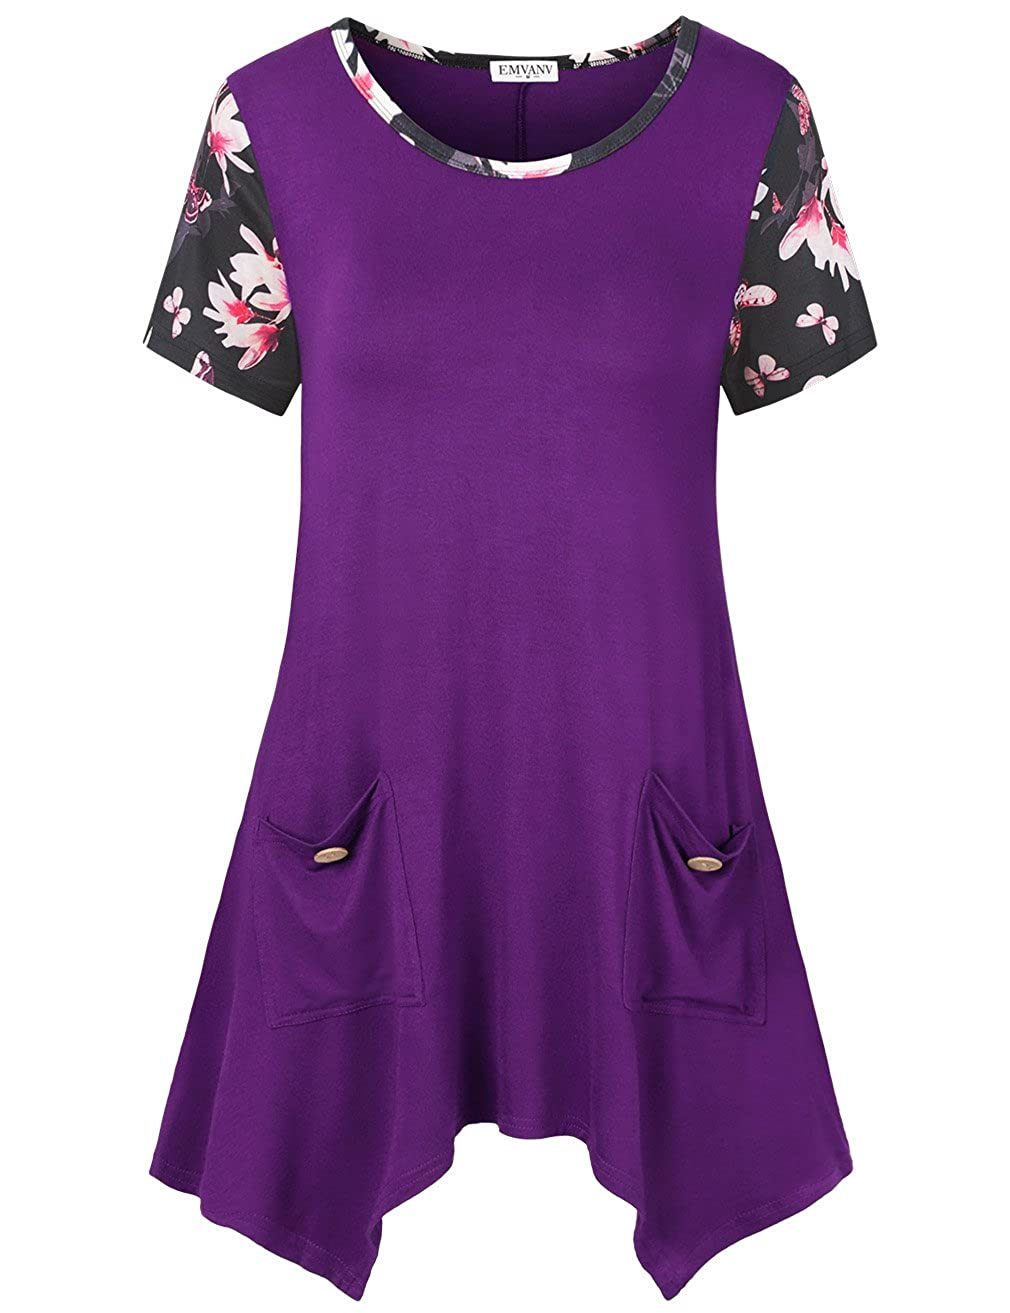 2d3ea0ea7c9 ... (XL) 40.2 inches (XXL) 42.1 inches,please check the size before  ordering,thank you. Tshirt Dress with Stripes - Short Sleeve / Loose Fit / Scoop  Neck ...